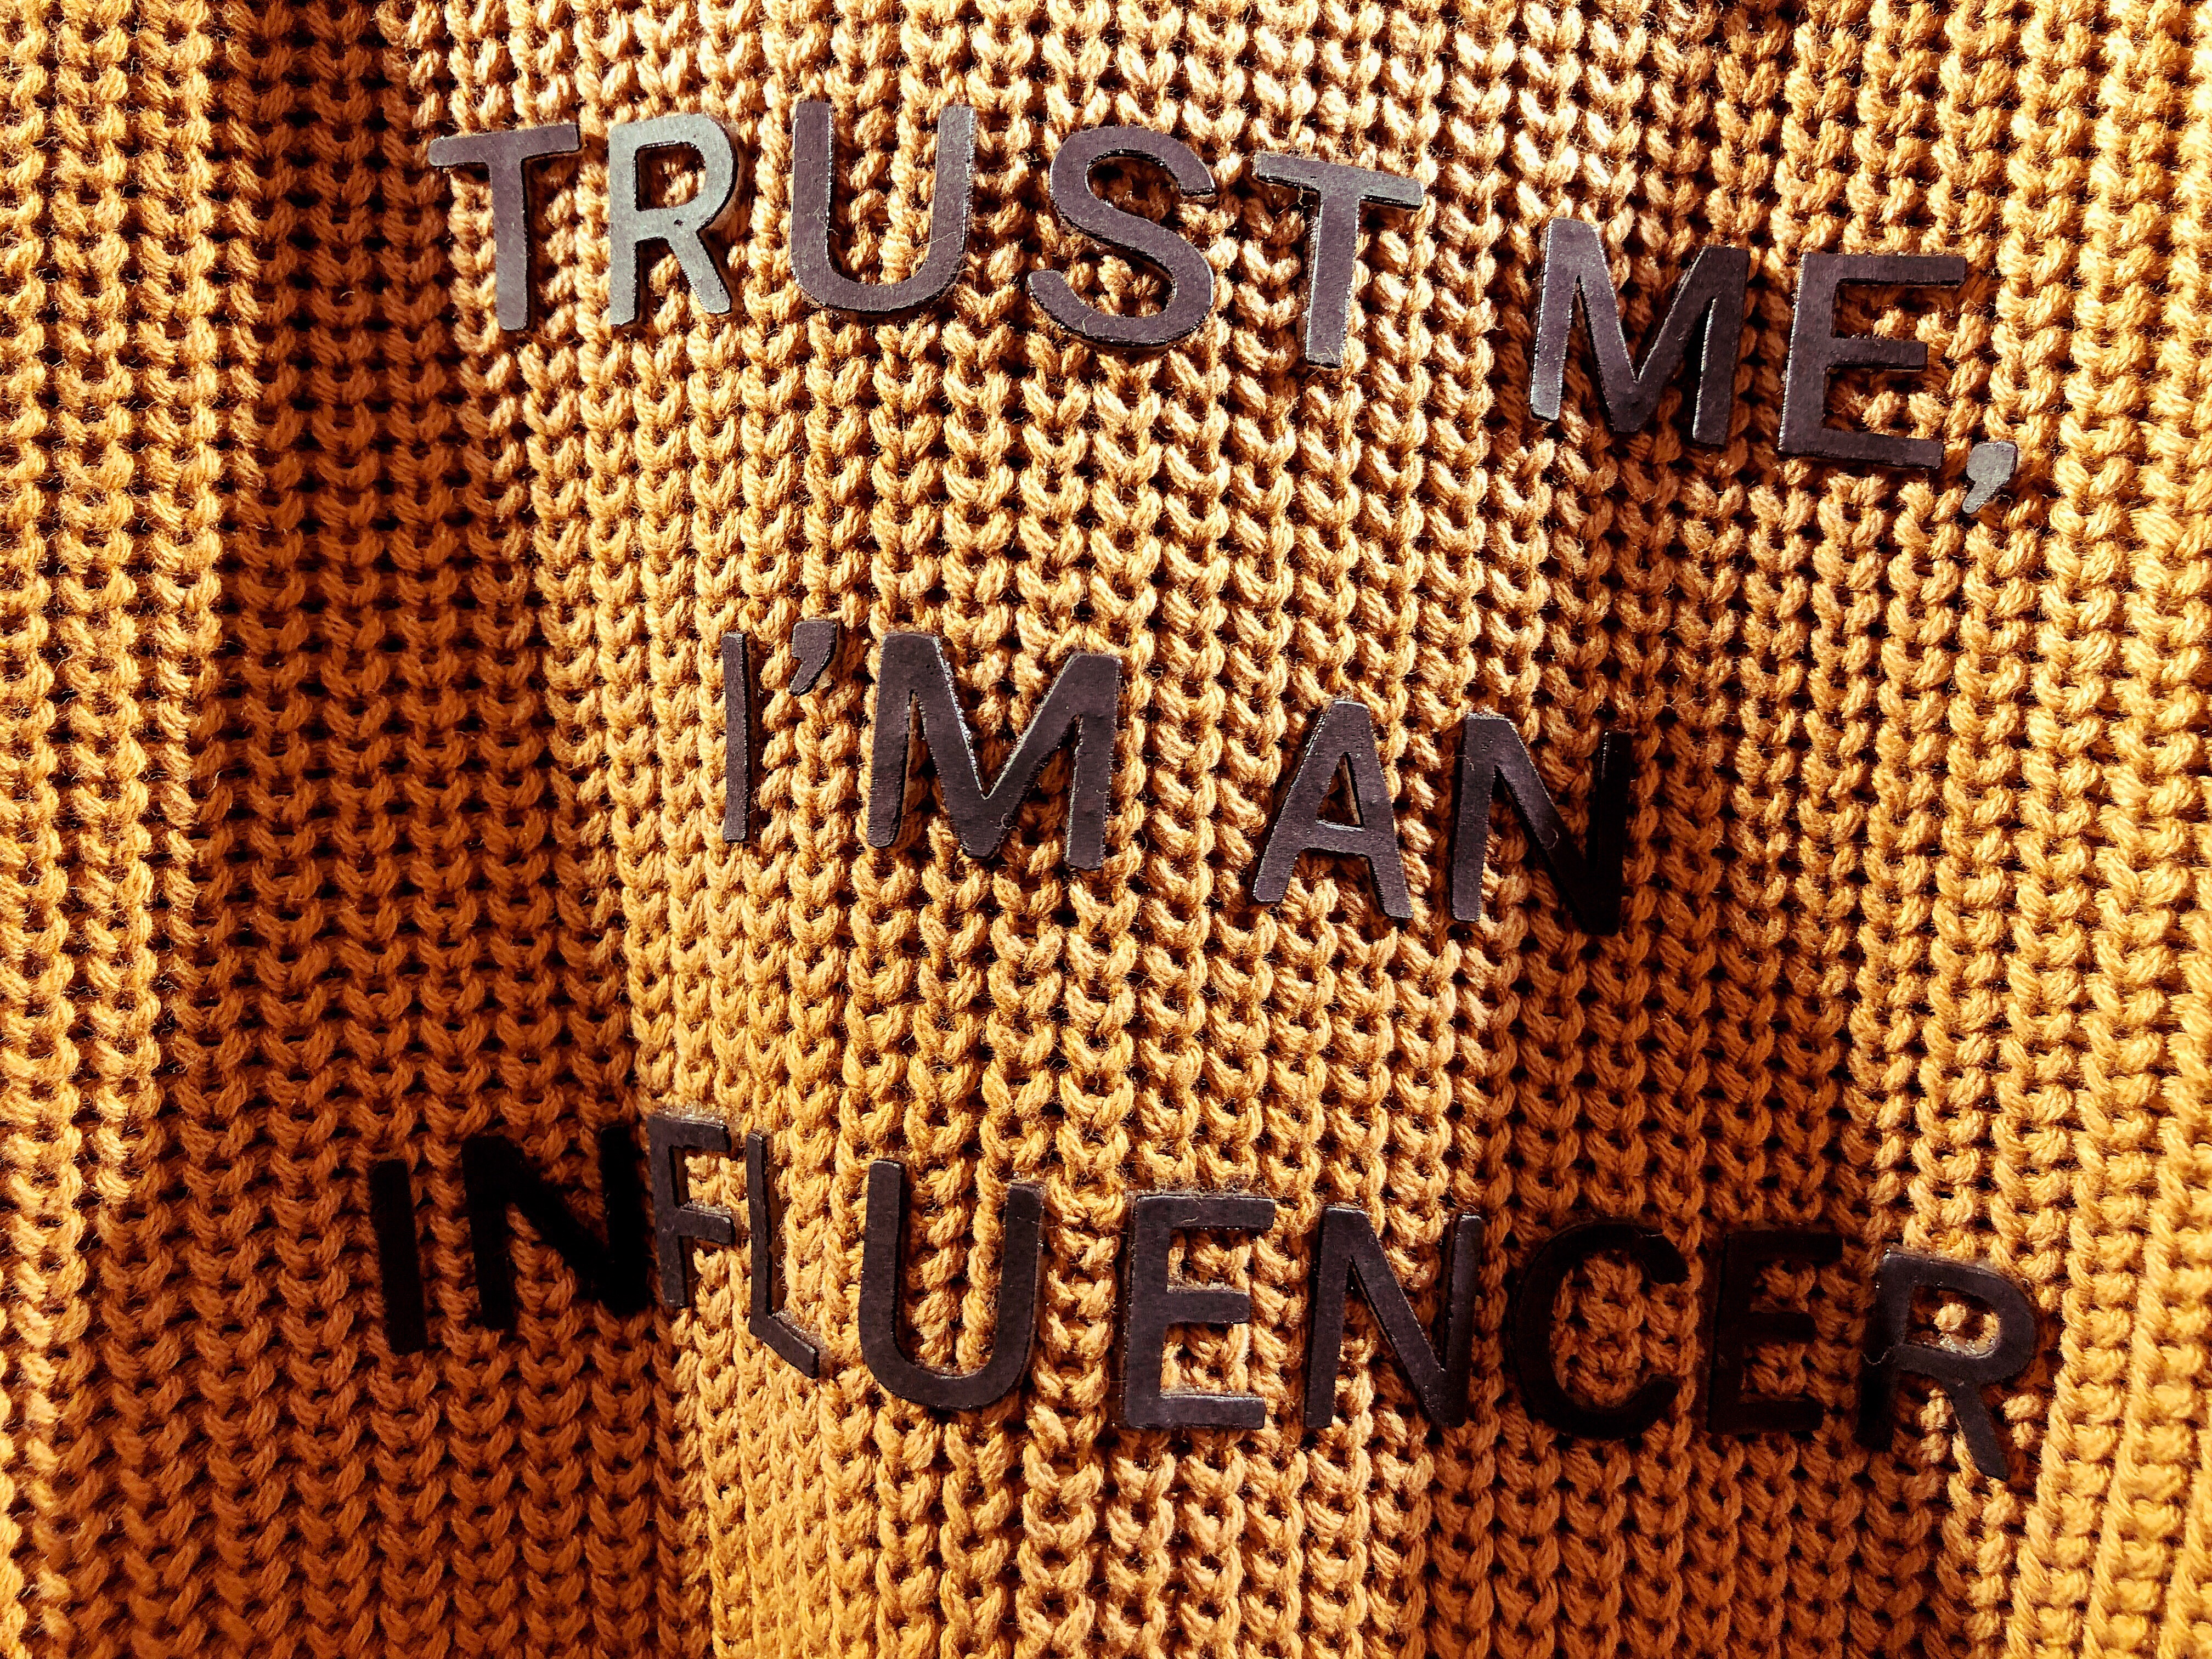 trust-me-i-m-an-influencer-influencer-influencer-influence-influential-words-on-sweater-words-in-the_t20_V7zG3l